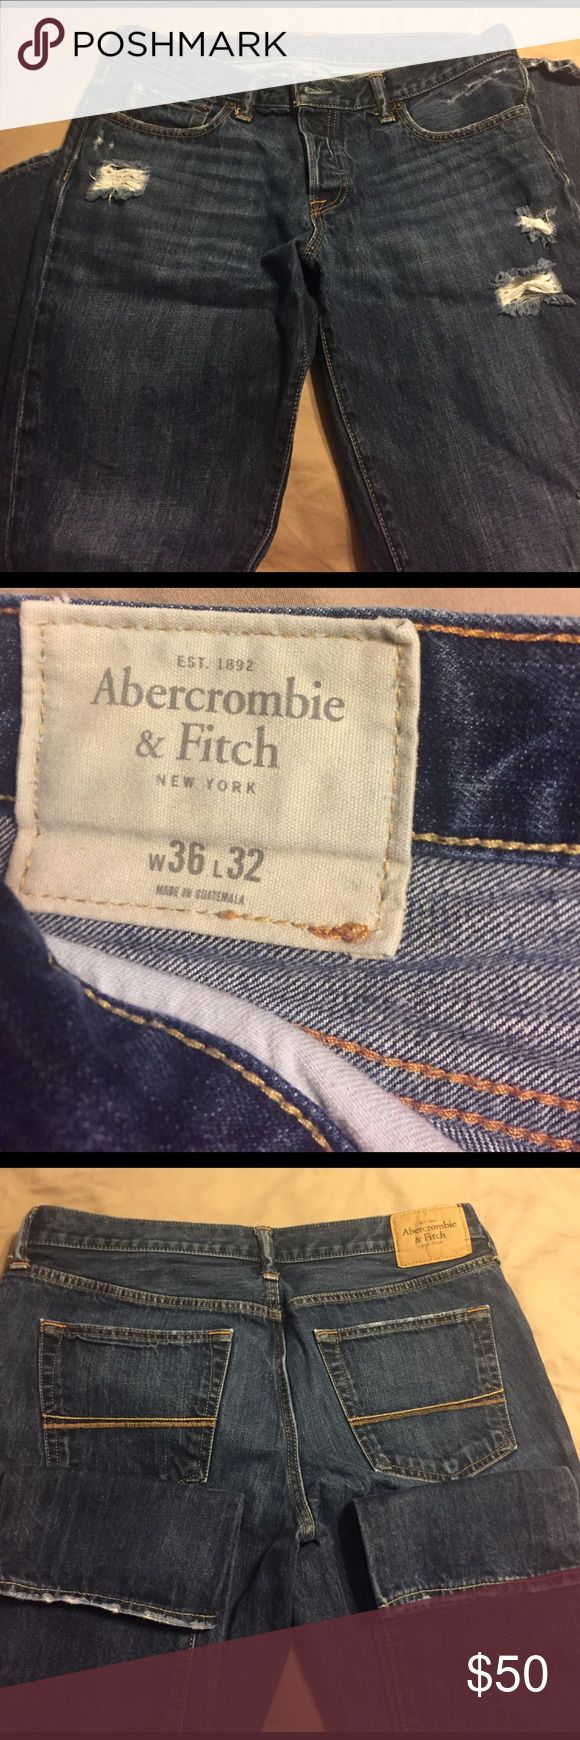 Men's Abercrombie Jeans Abercrombie & Fitch button-fly jeans size 36/32, practically brand new. Worn once or twice Abercrombie & Fitch Jeans Skinny